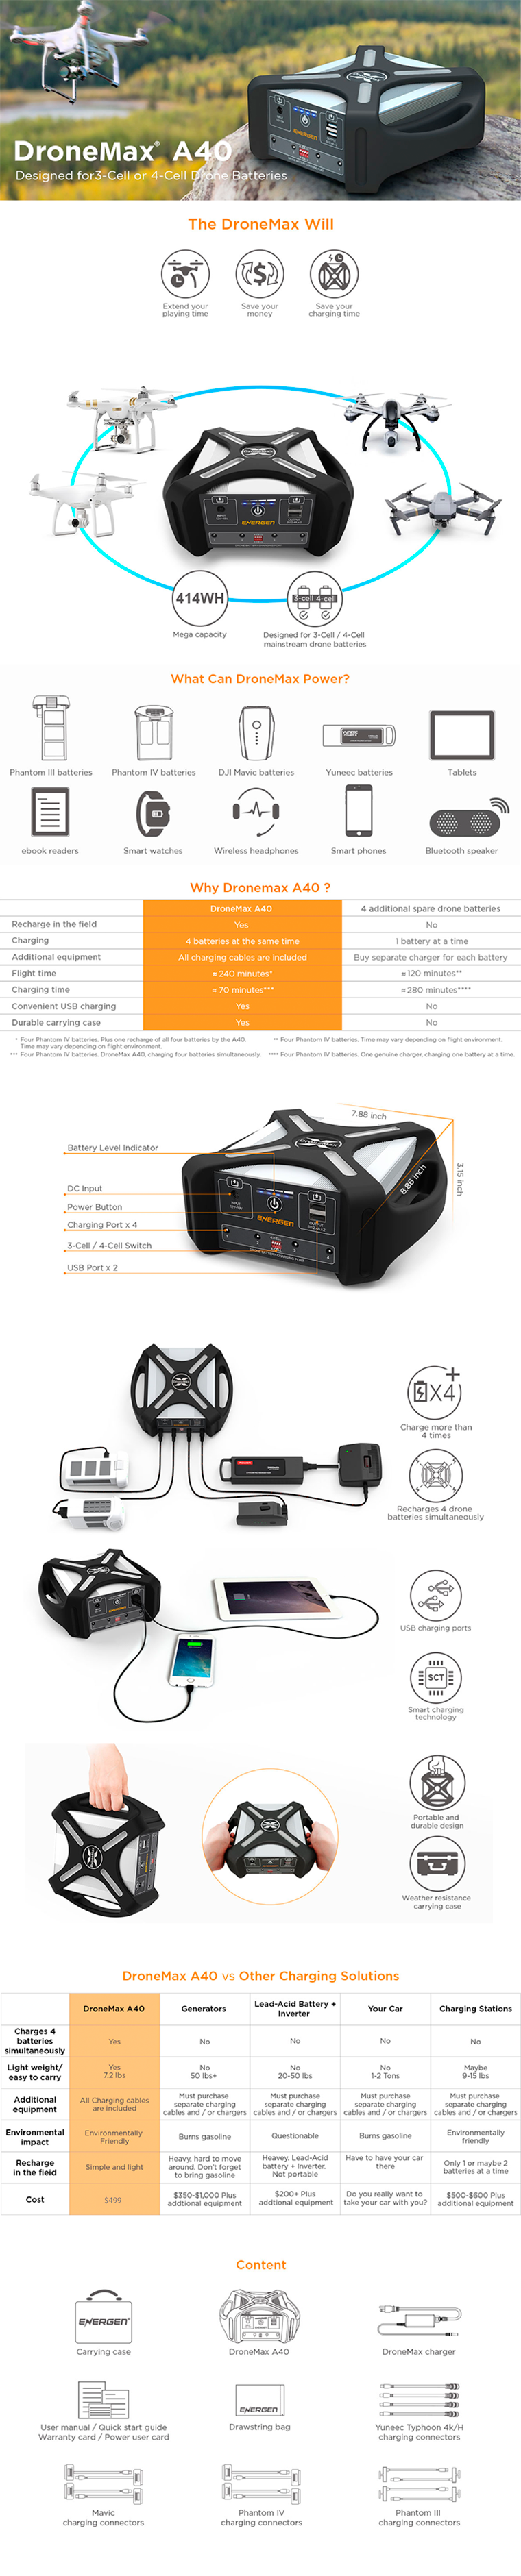 DroneMax A40 Portable Drone Charging Infographic